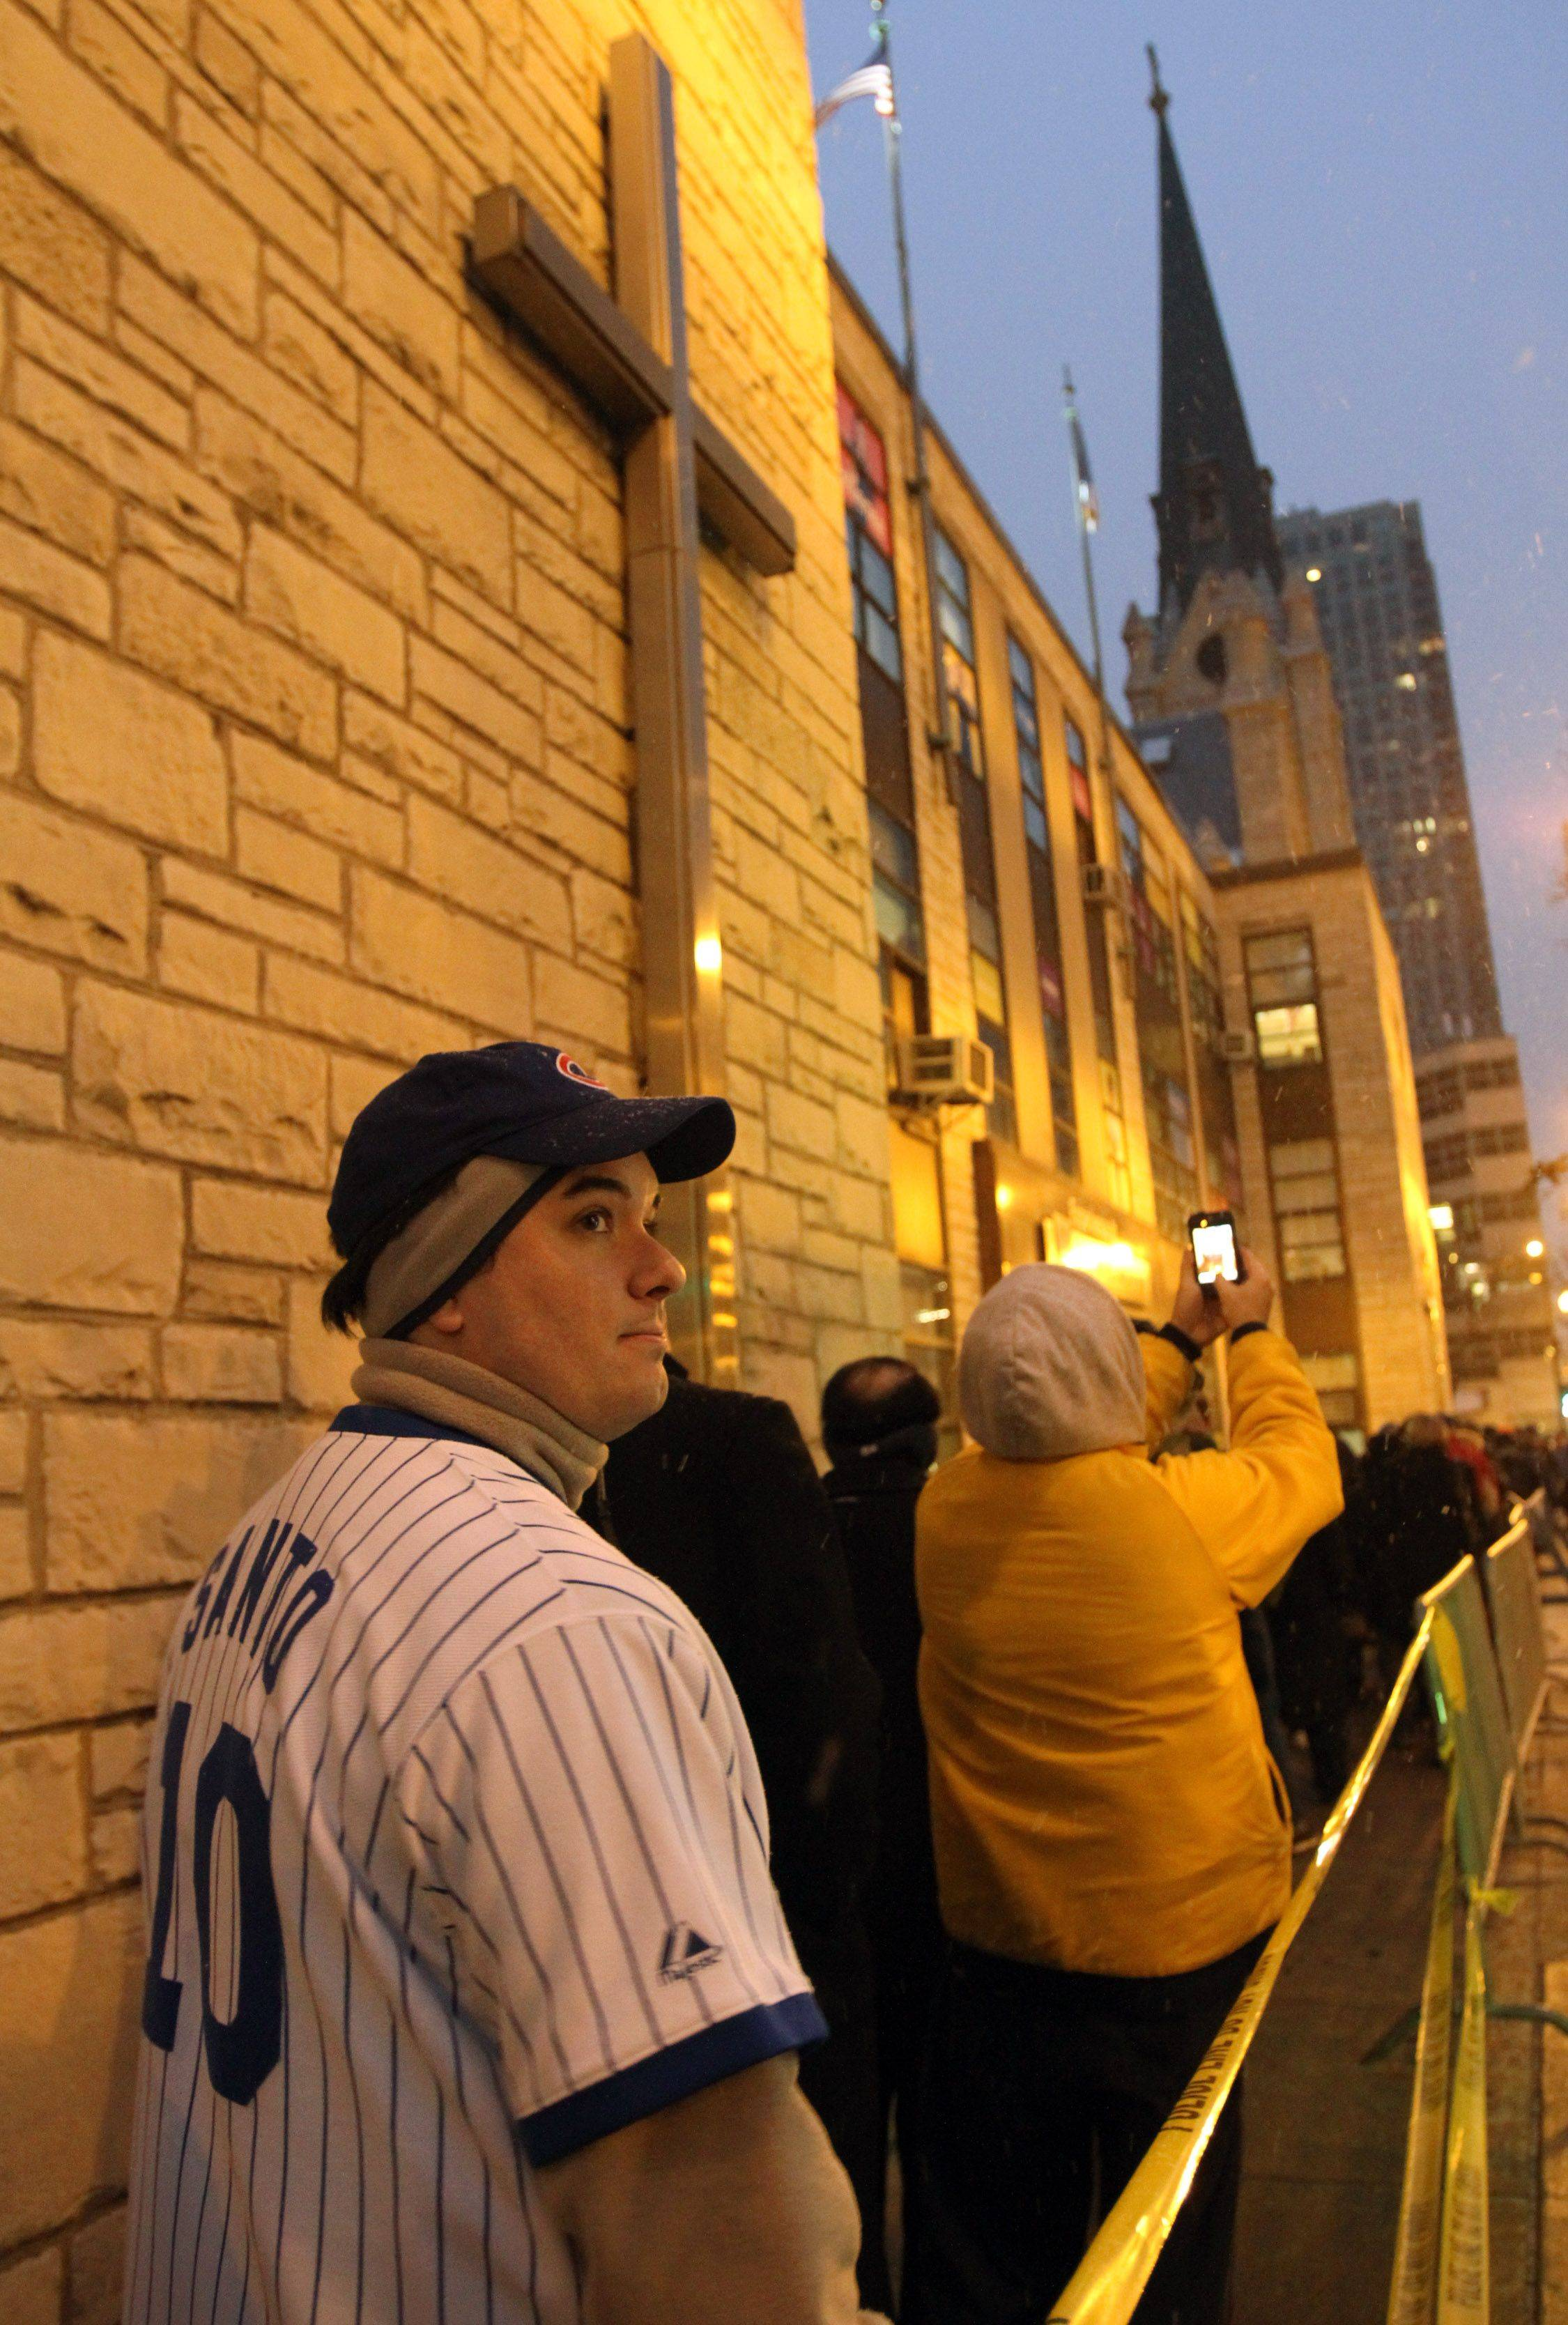 Chicago Cubs fan Dan Maratto of Chicago, wearing a number 10 jersey, waits in line on State Street for the public visitation for Chicago Cubs legend Ron Santo.